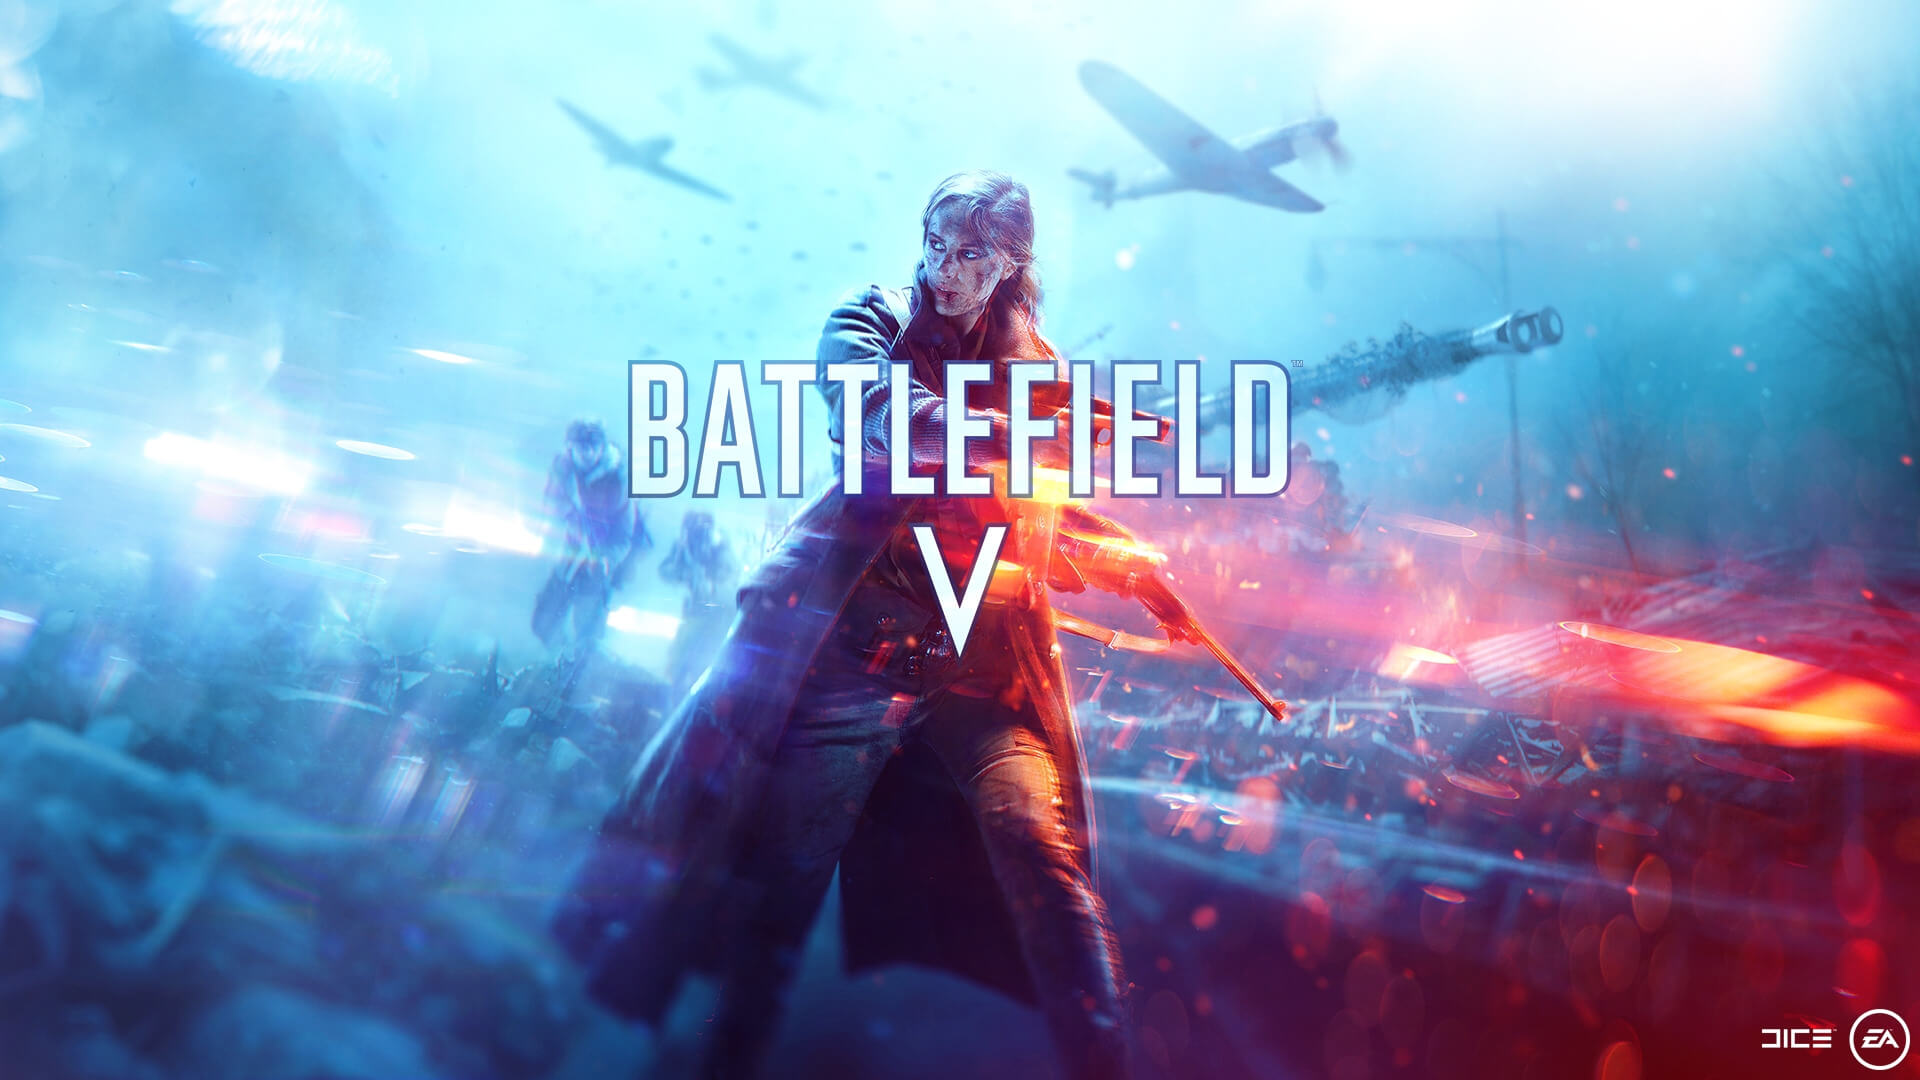 DICE cancels Battlefield 5's 5v5 competitive mode